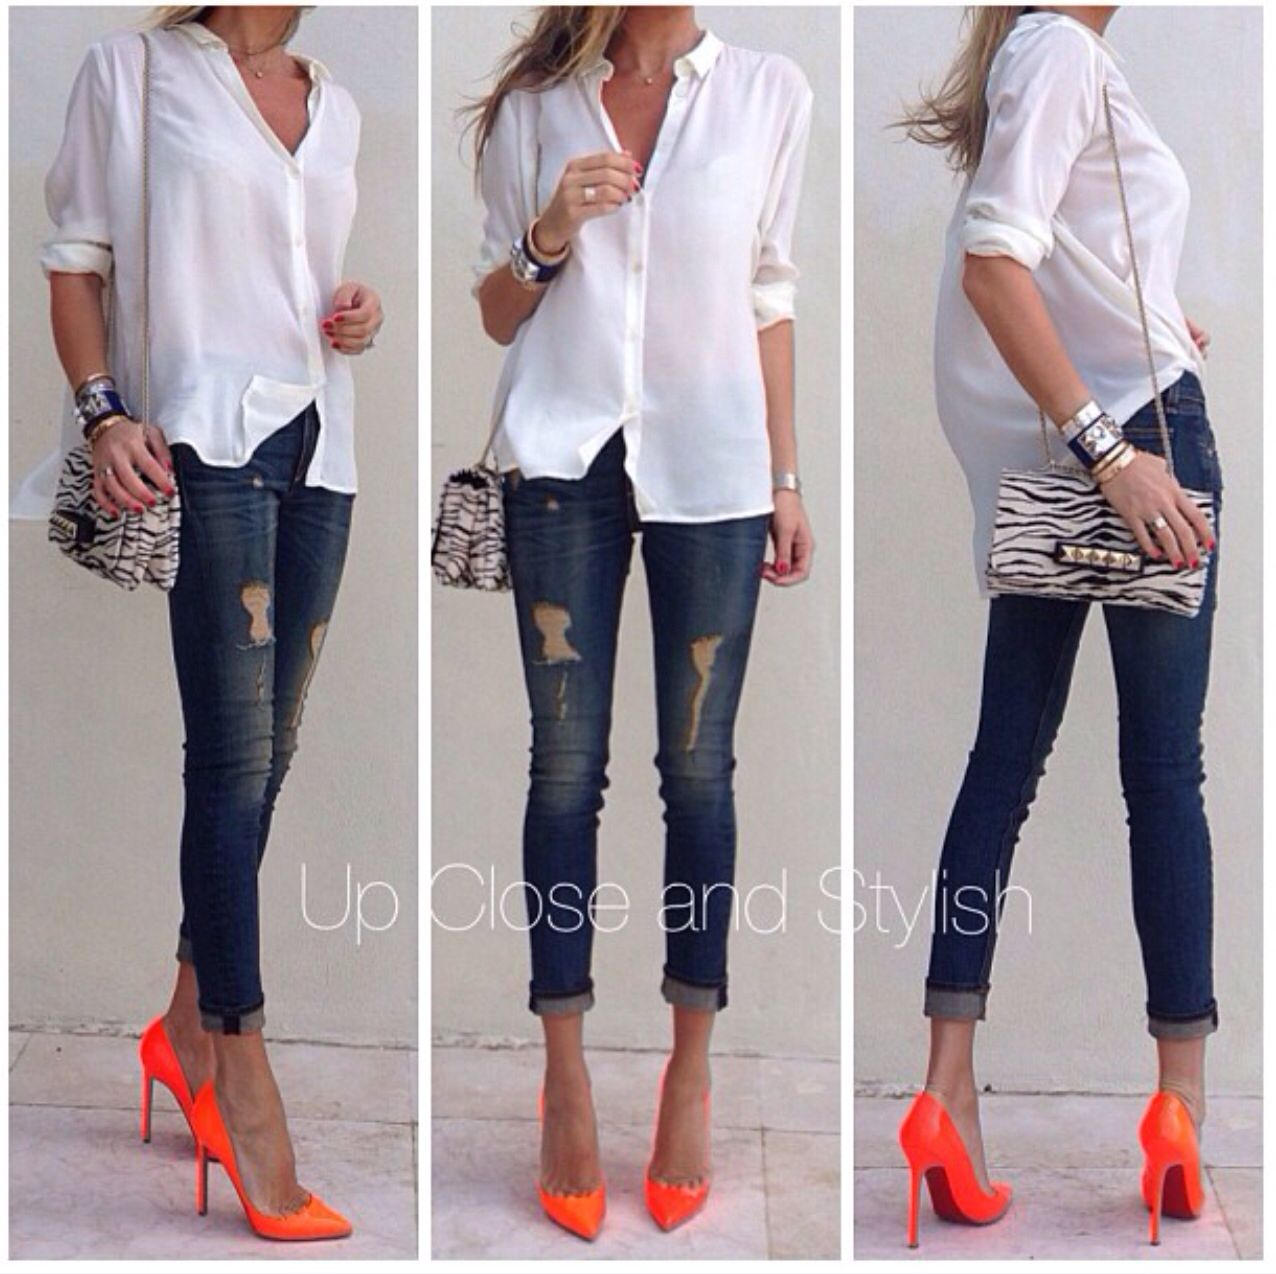 #Guess shirt, #Rag_Bone jeans, #Louboutin Pigalle 120mm and #Valentino clutch.